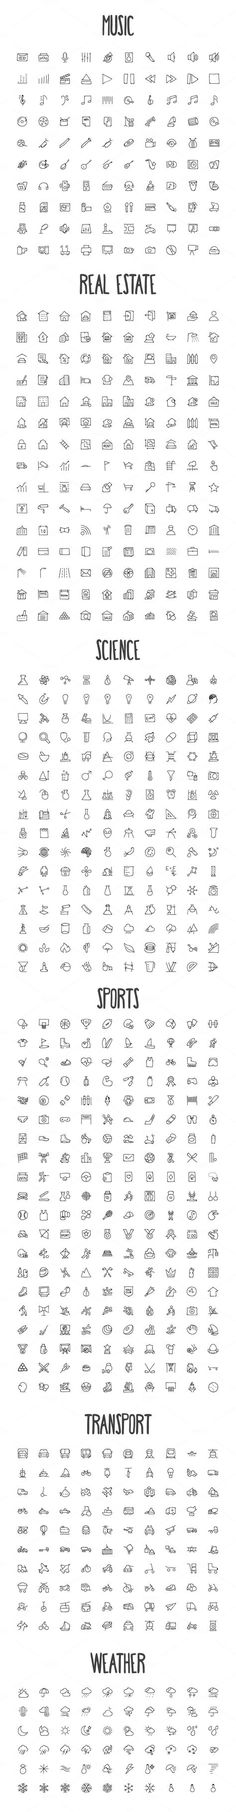 2440 Hand Drawn Doodle Icons Bundle by Creative Stall on Creative Market